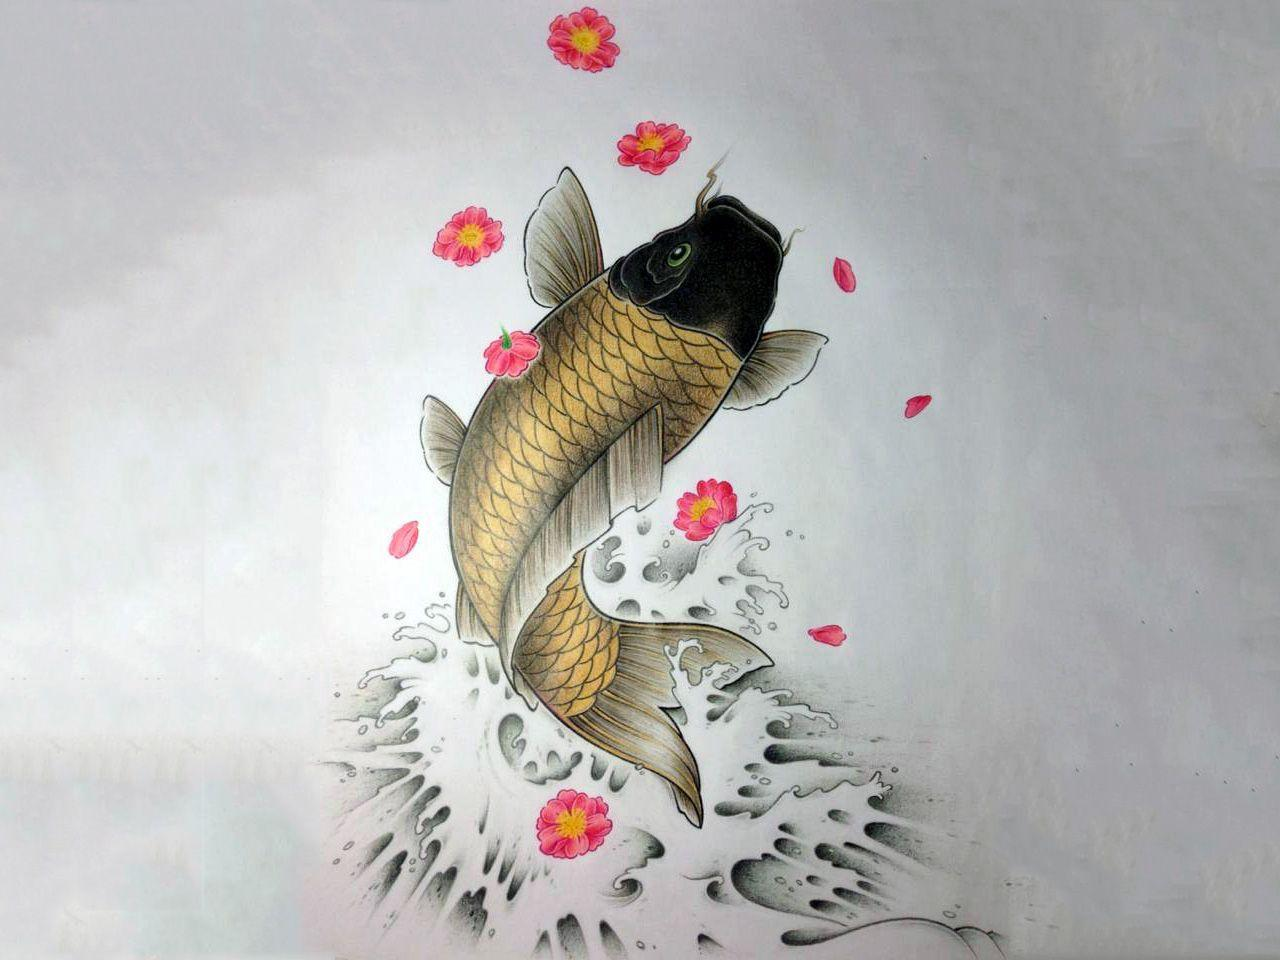 Koi fish wallpapers wallpaper cave for Koi 5 muhavare